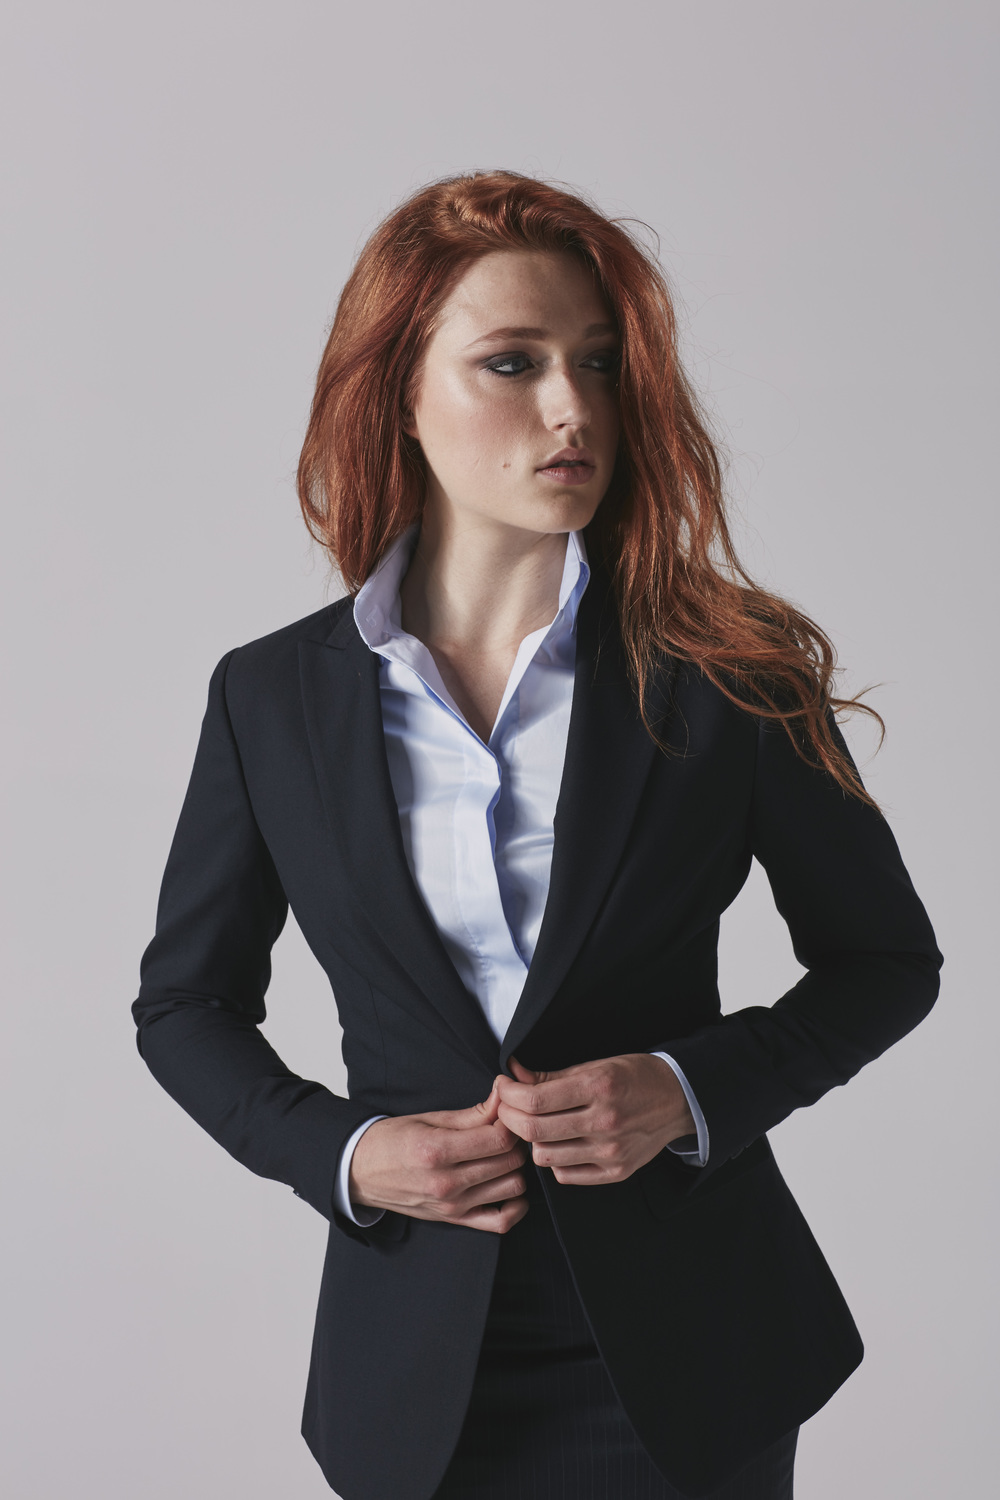 Womens blazer womens suit jacket.jpg